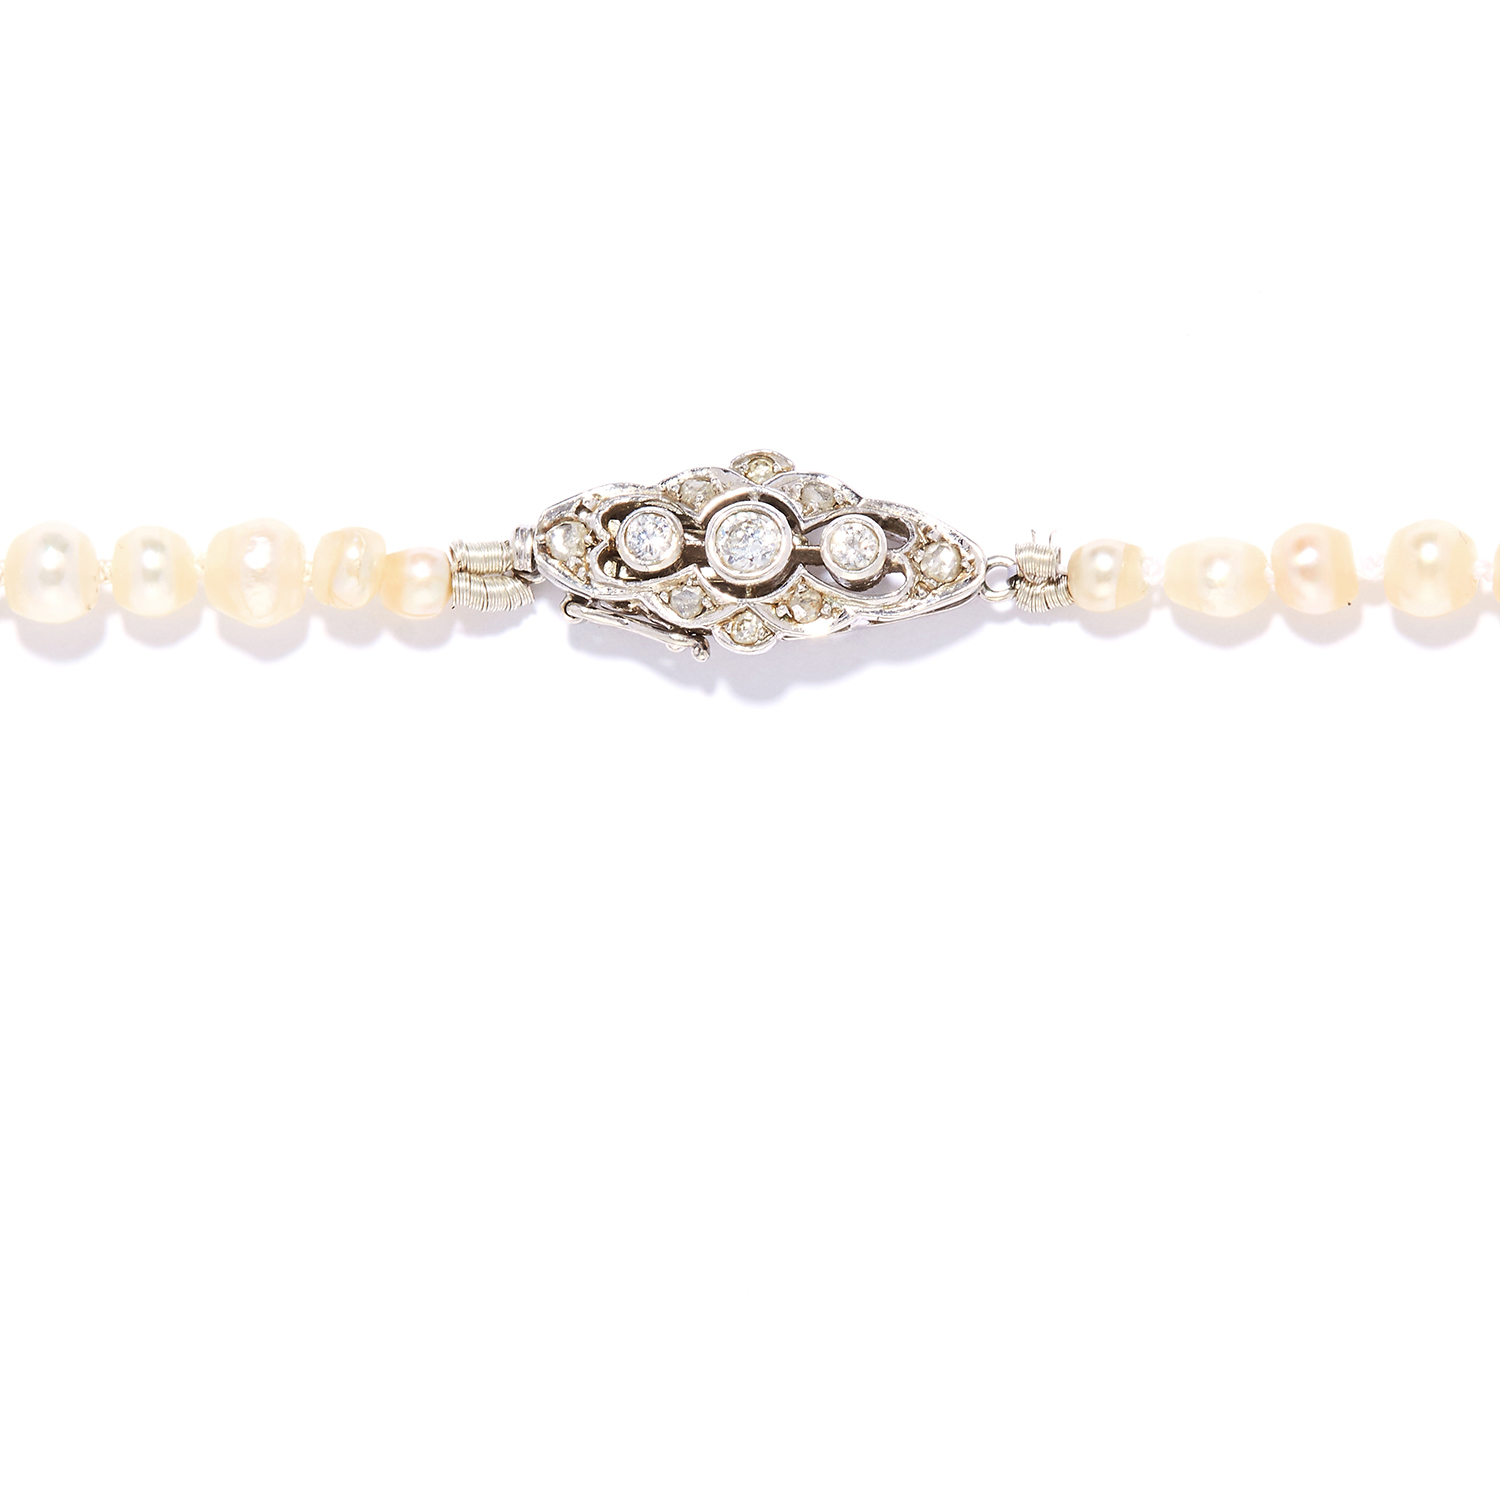 ANTIQUE NATURAL PEARL AND DIAMOND NECKLACE in platinum or white gold, comprising a single row of - Image 2 of 2